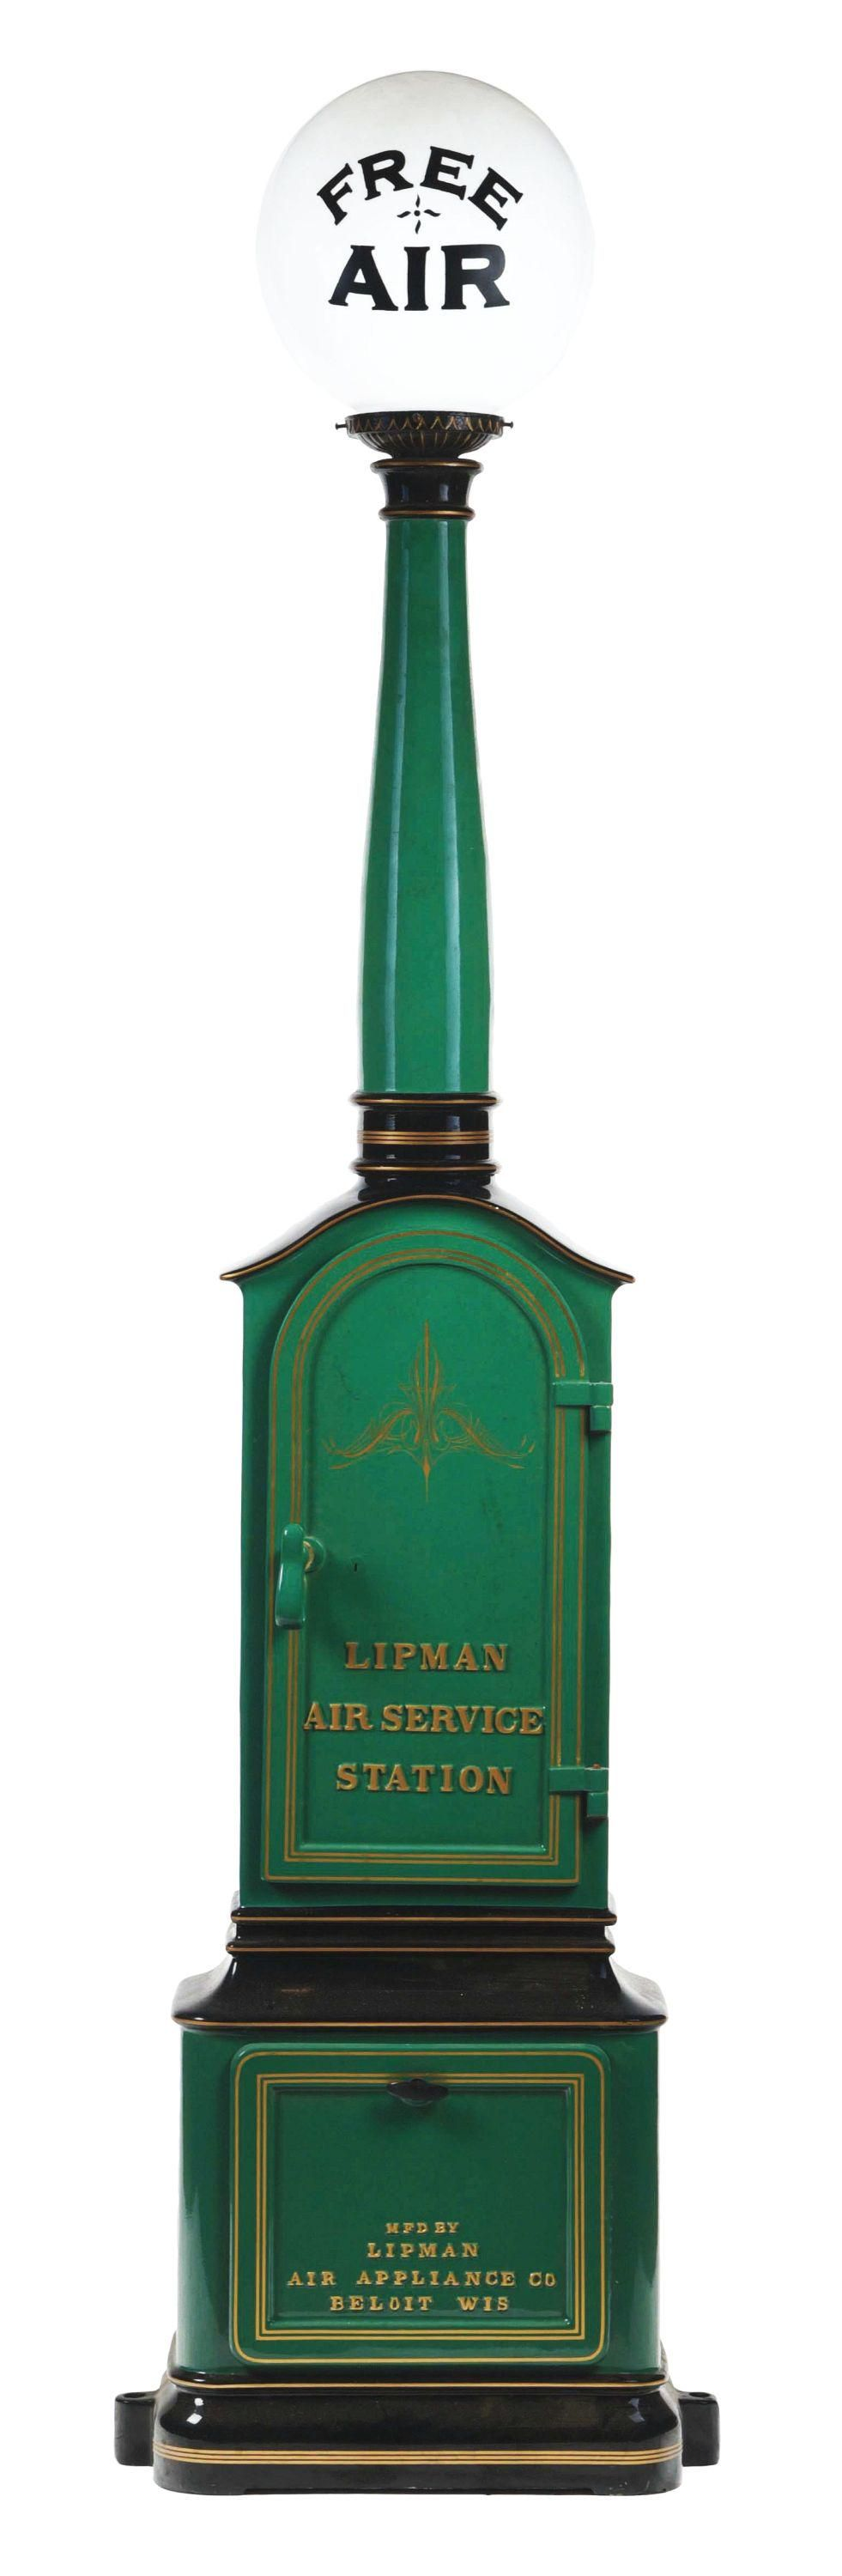 EXTREMELY RARE LIPMAN AIR SERVICE STATION AIR METER W/